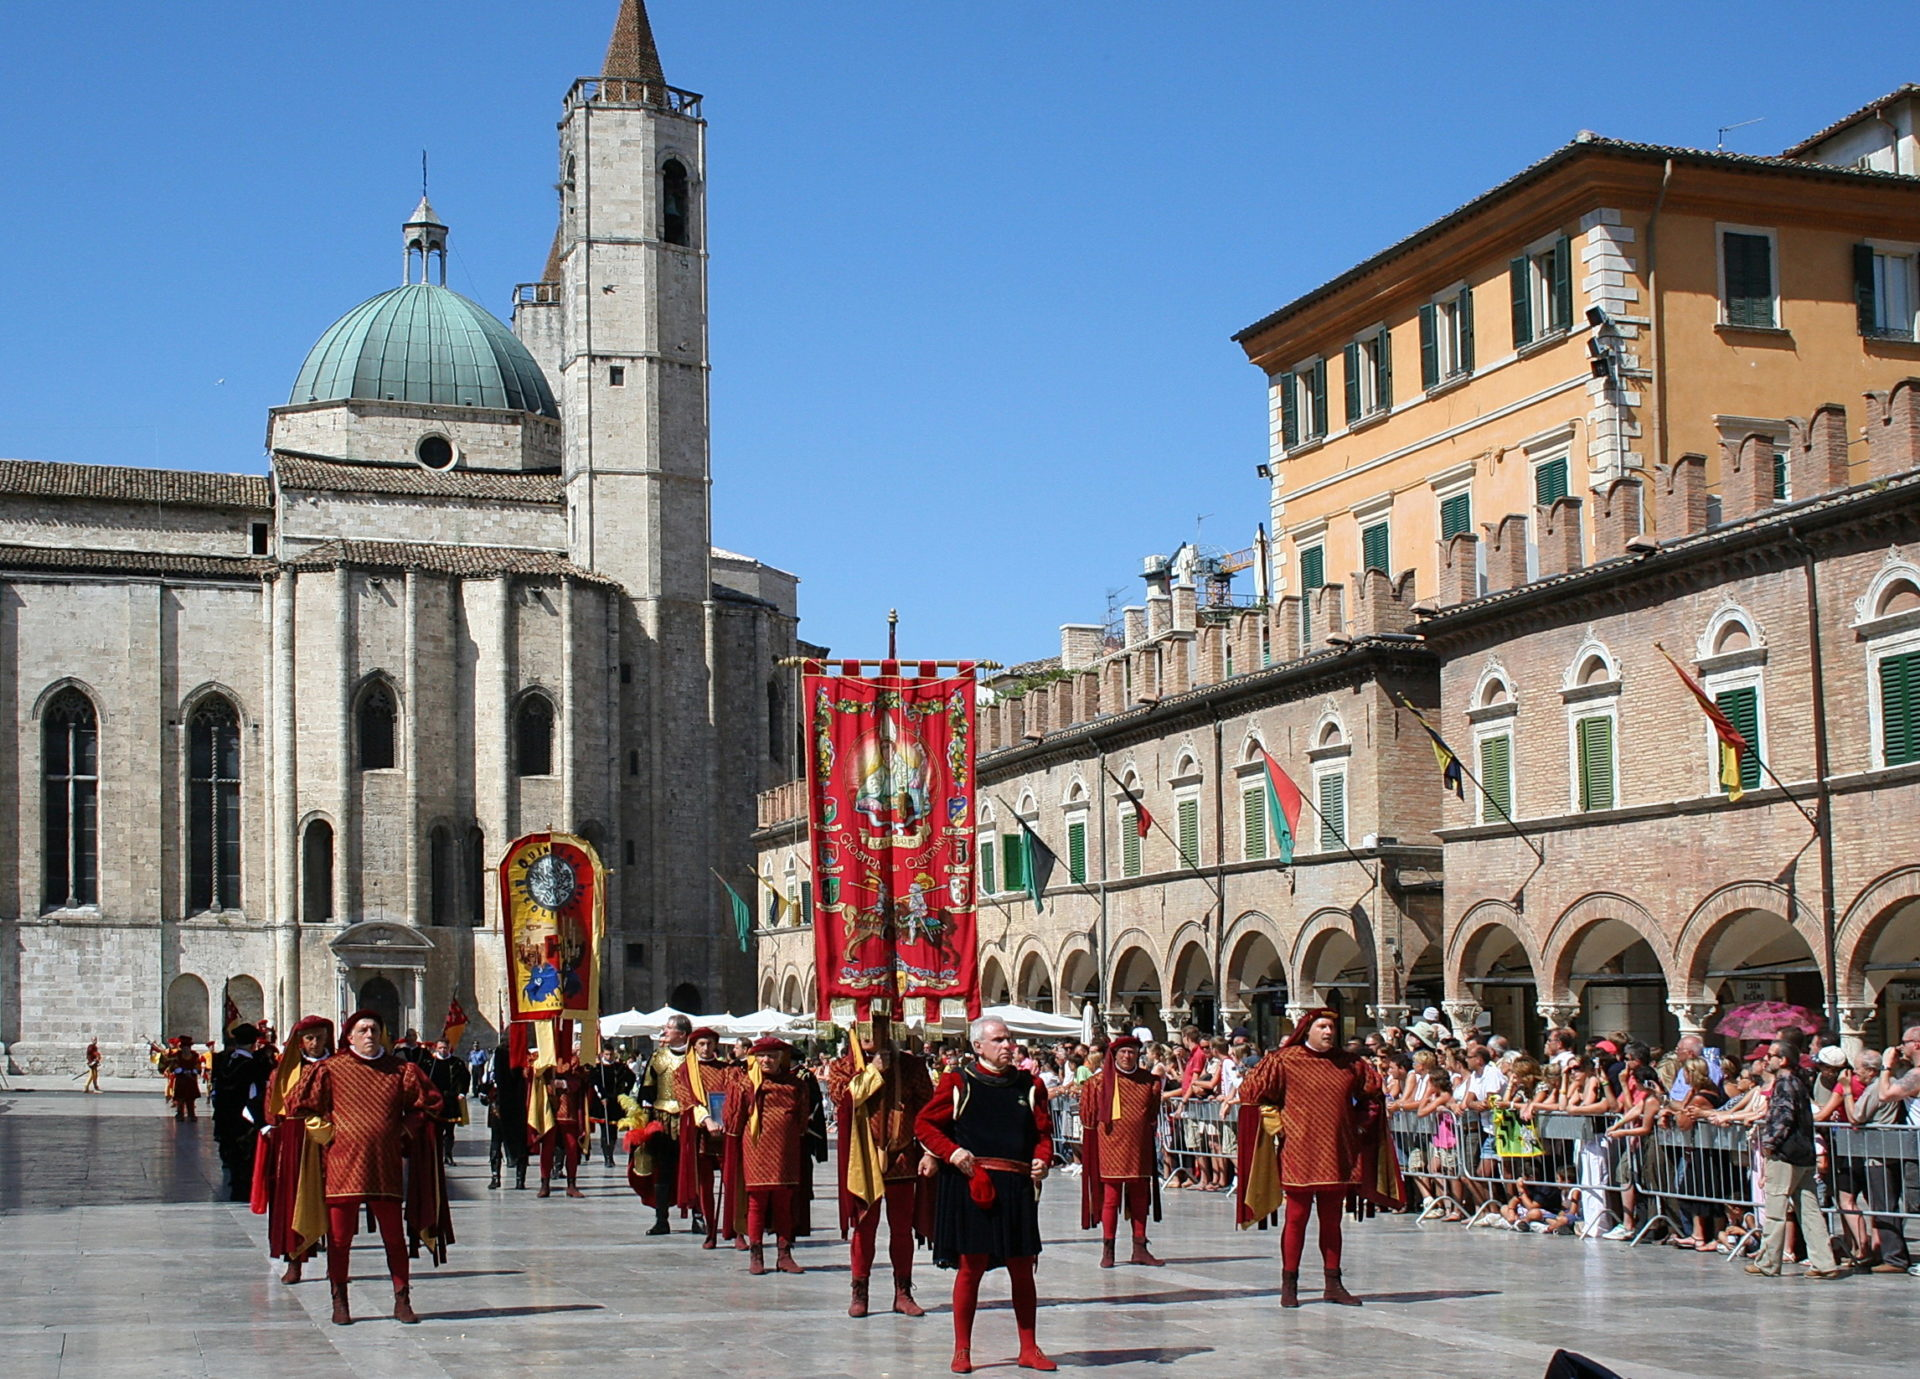 Ascoli Piceno – the Quintain